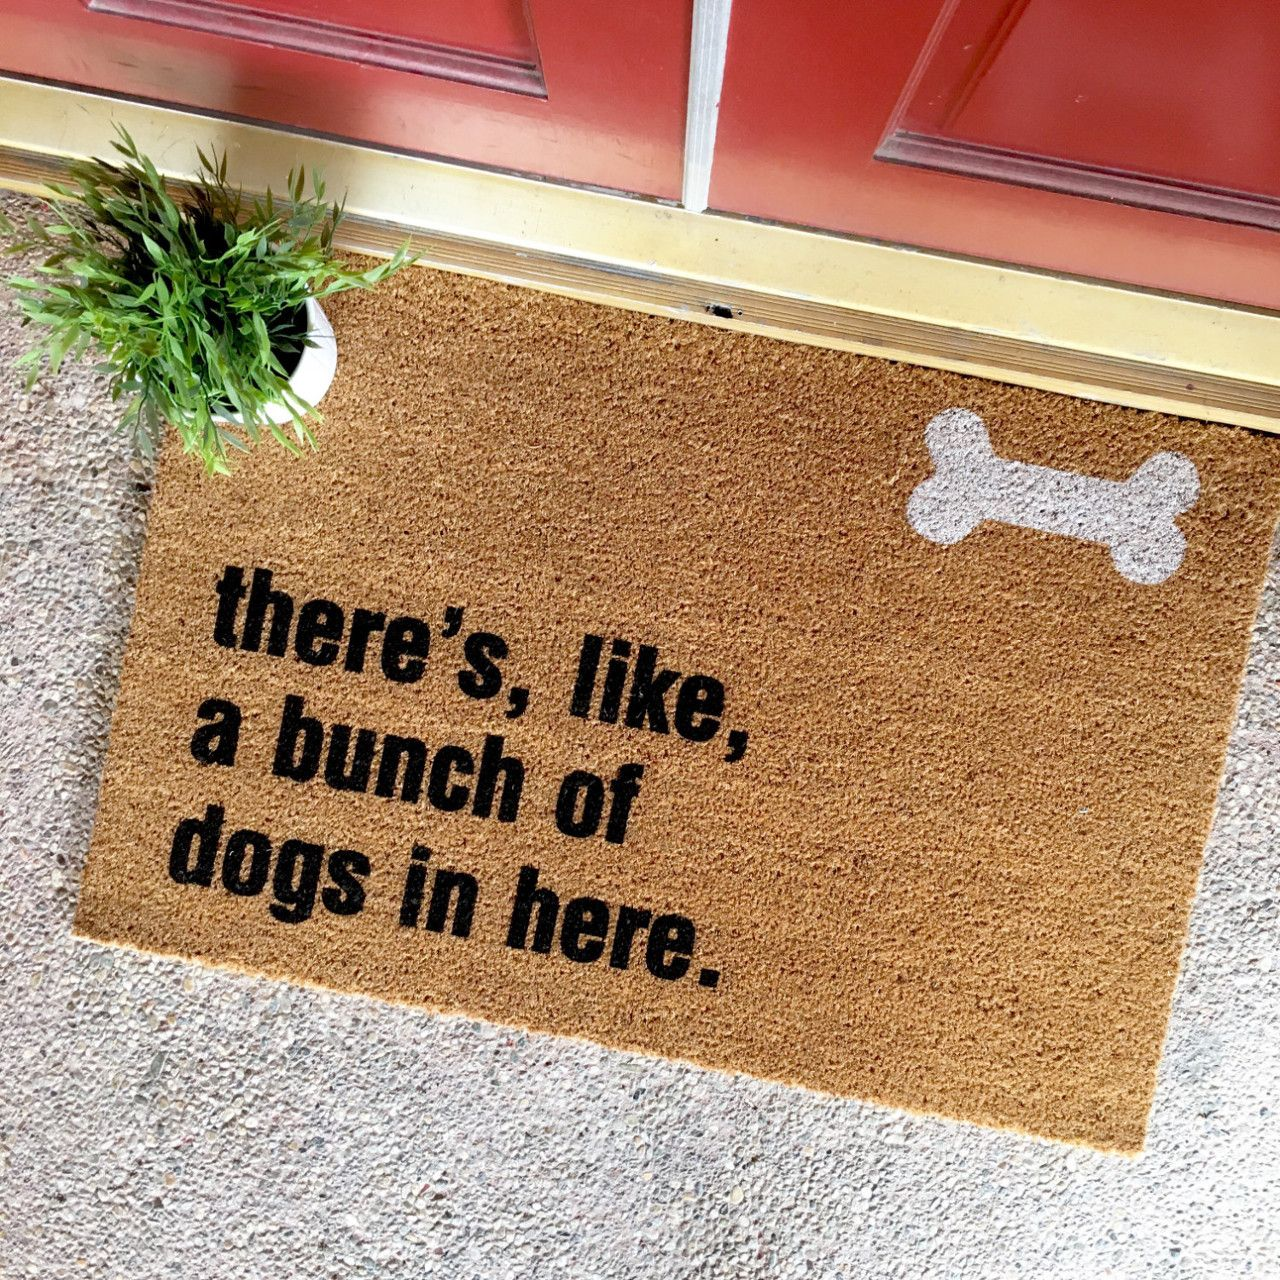 Bunch Of Dogs In Here Doormat From The Cheeky Doormat Dog Rooms